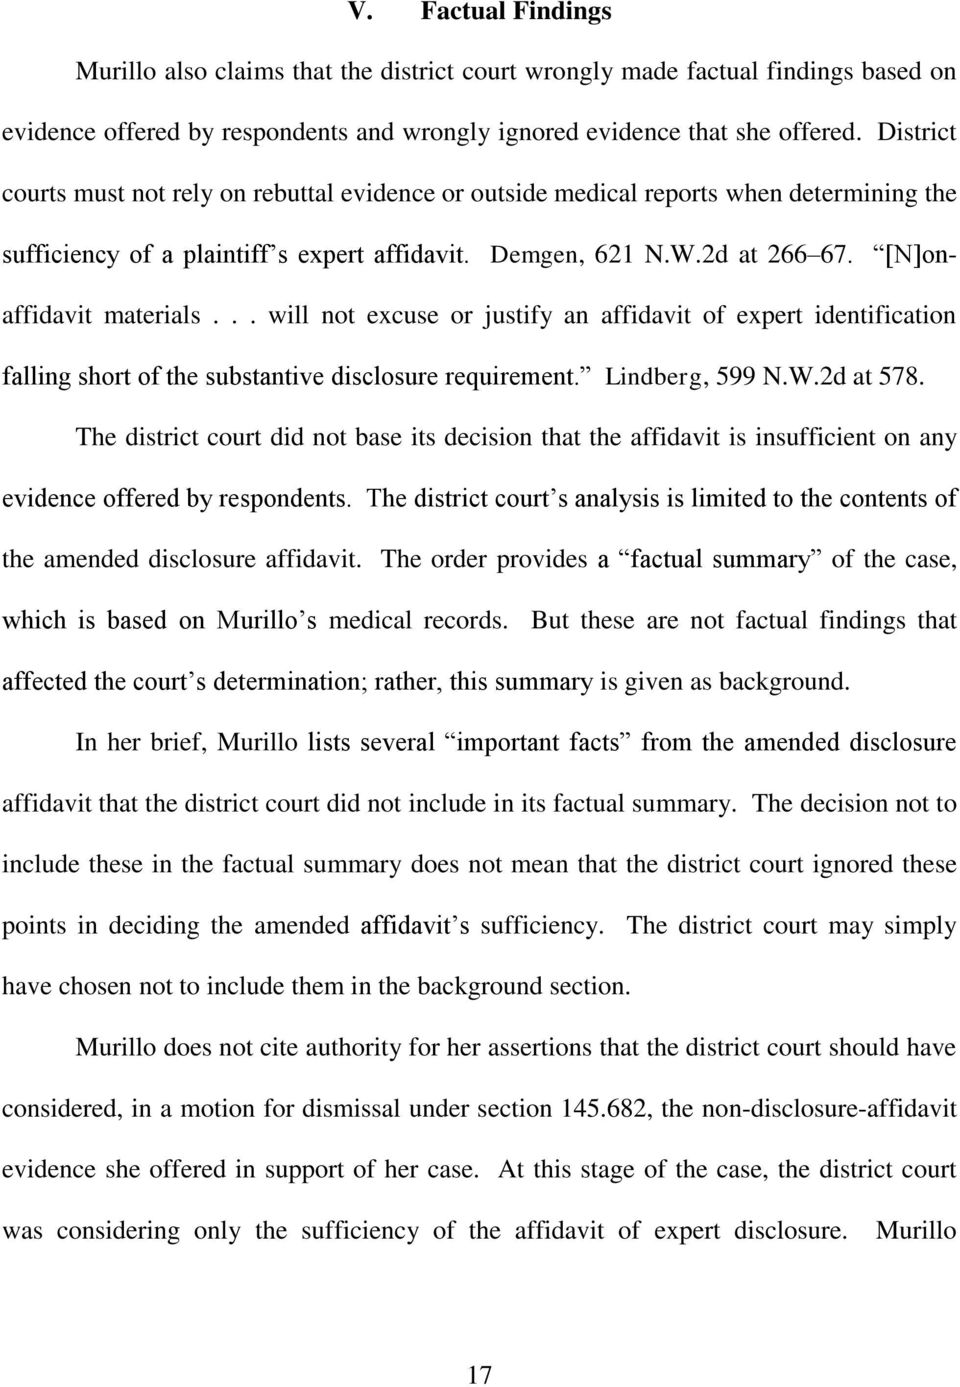 [N]onaffidavit materials... will not excuse or justify an affidavit of expert identification falling short of the substantive disclosure requirement. Lindberg, 599 N.W.2d at 578.